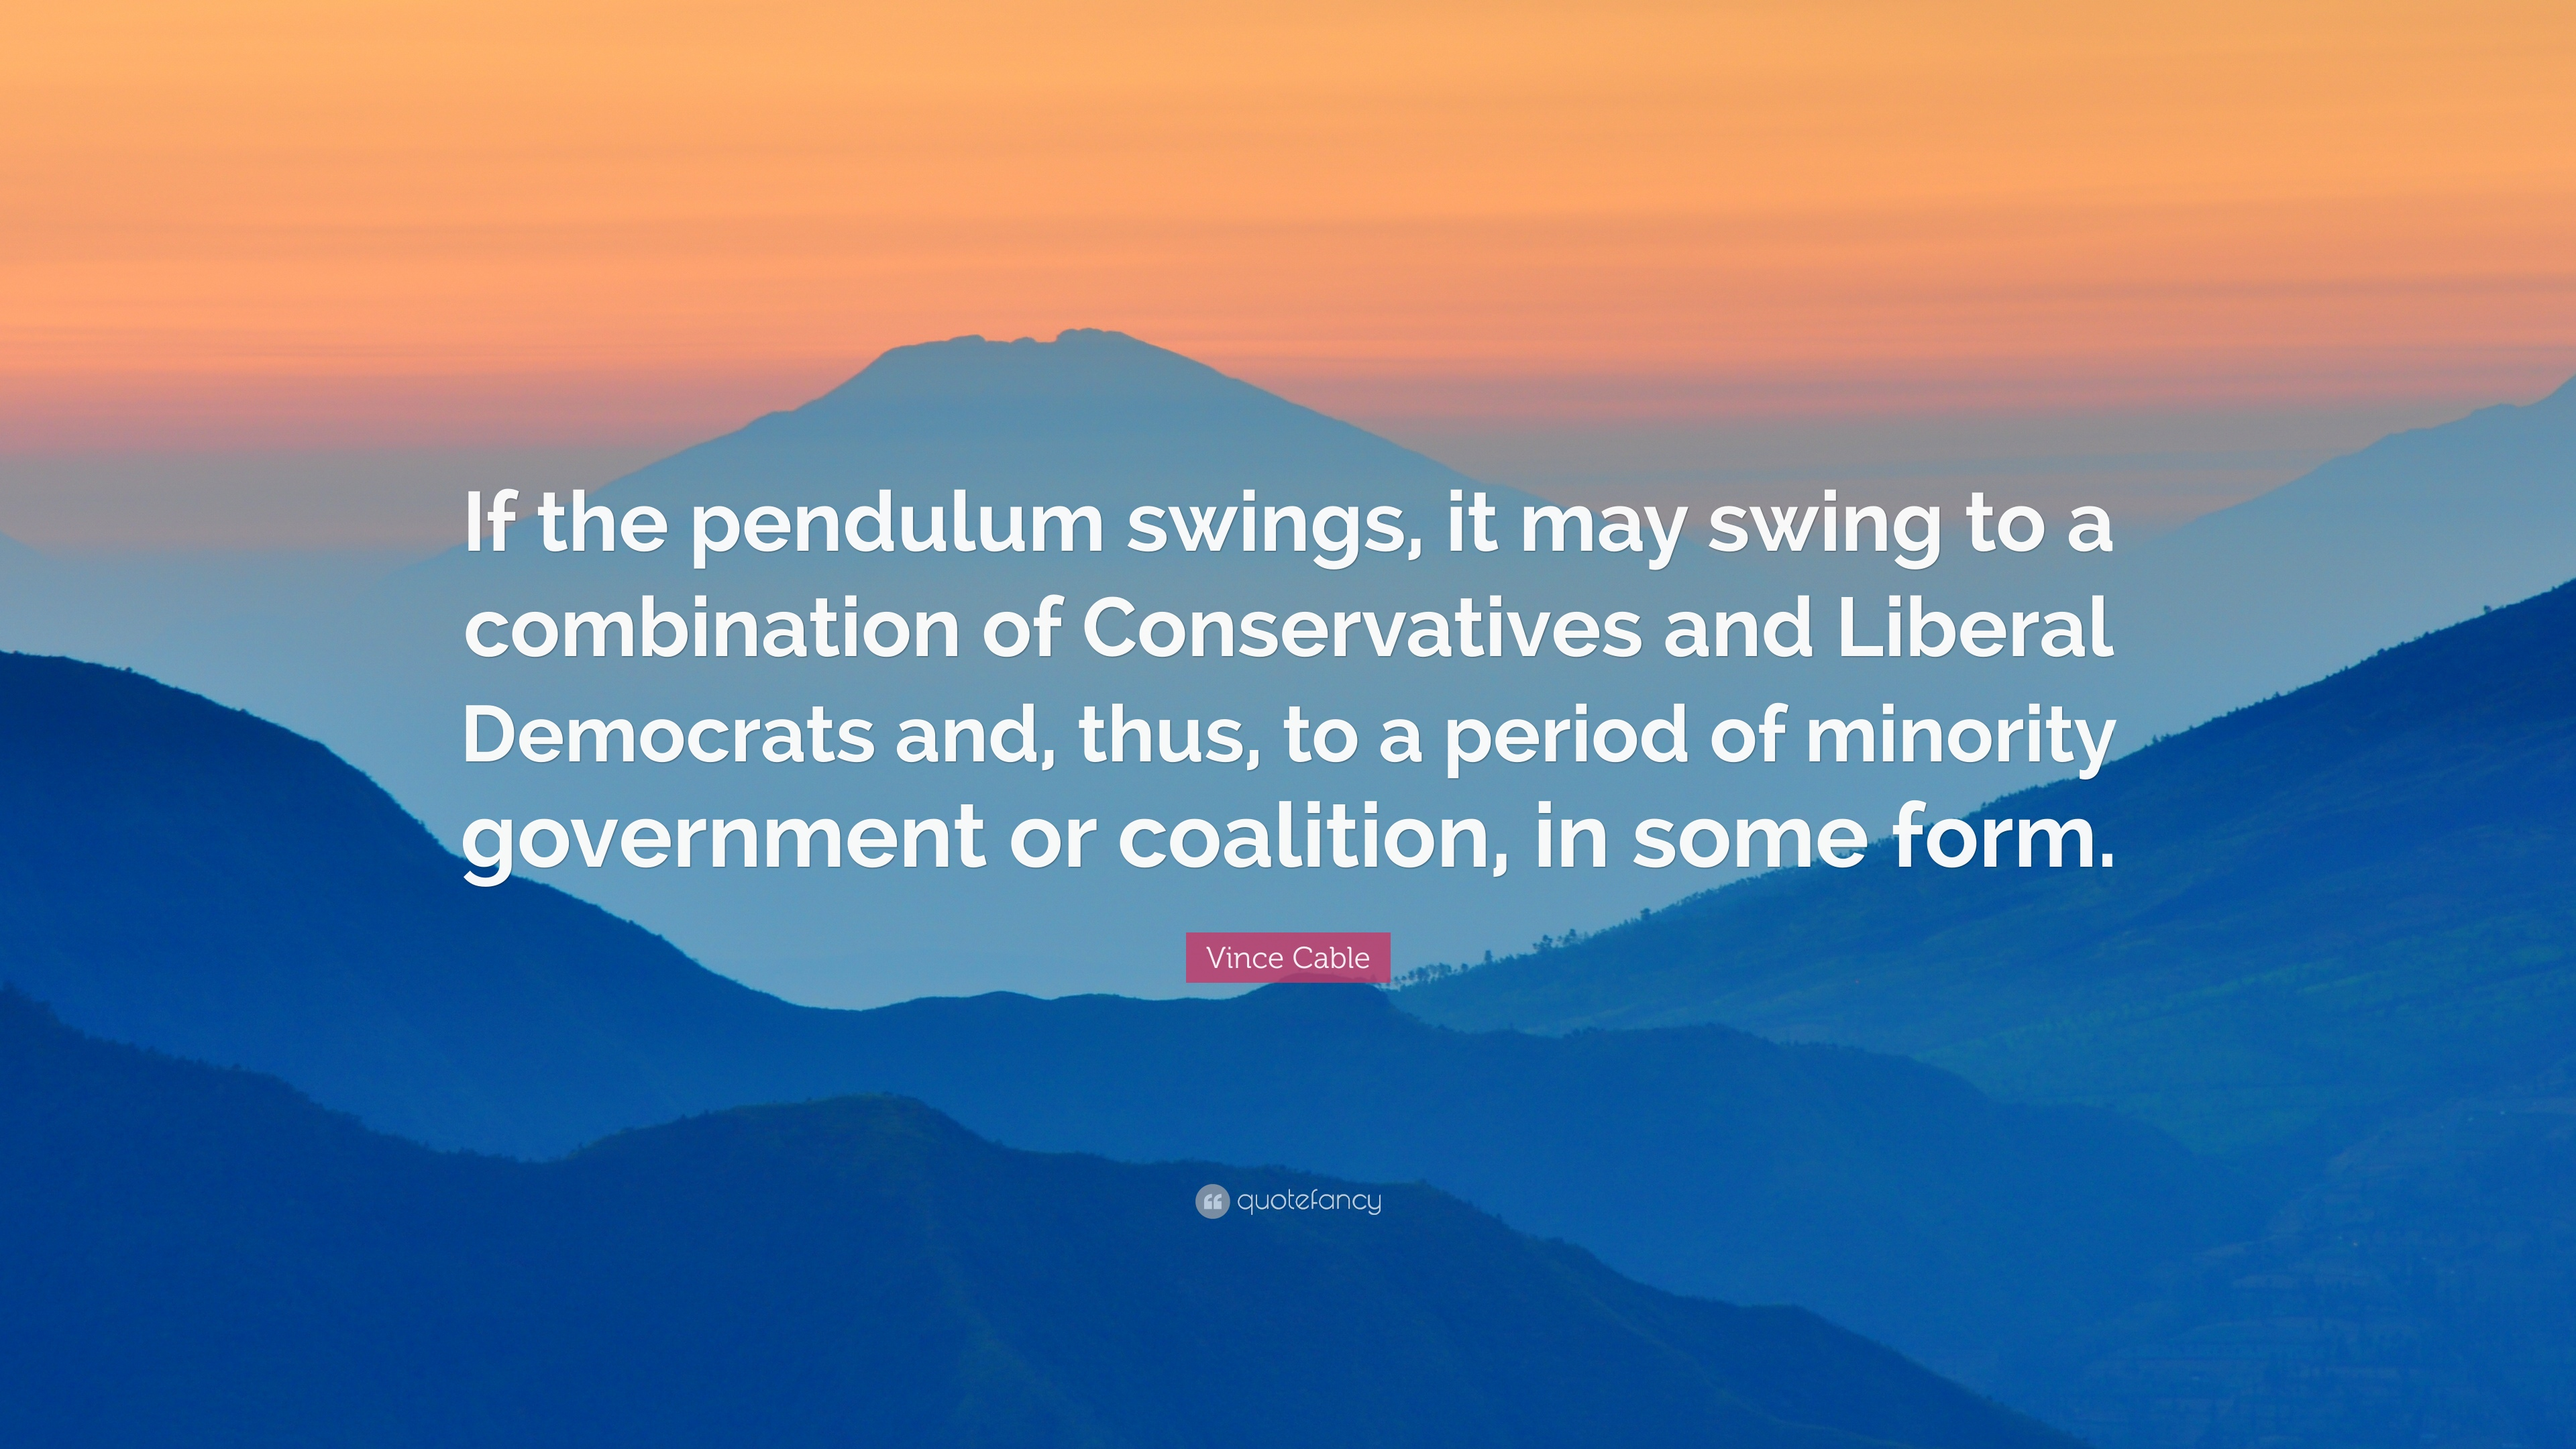 Very Swinging pendulum in government absurd